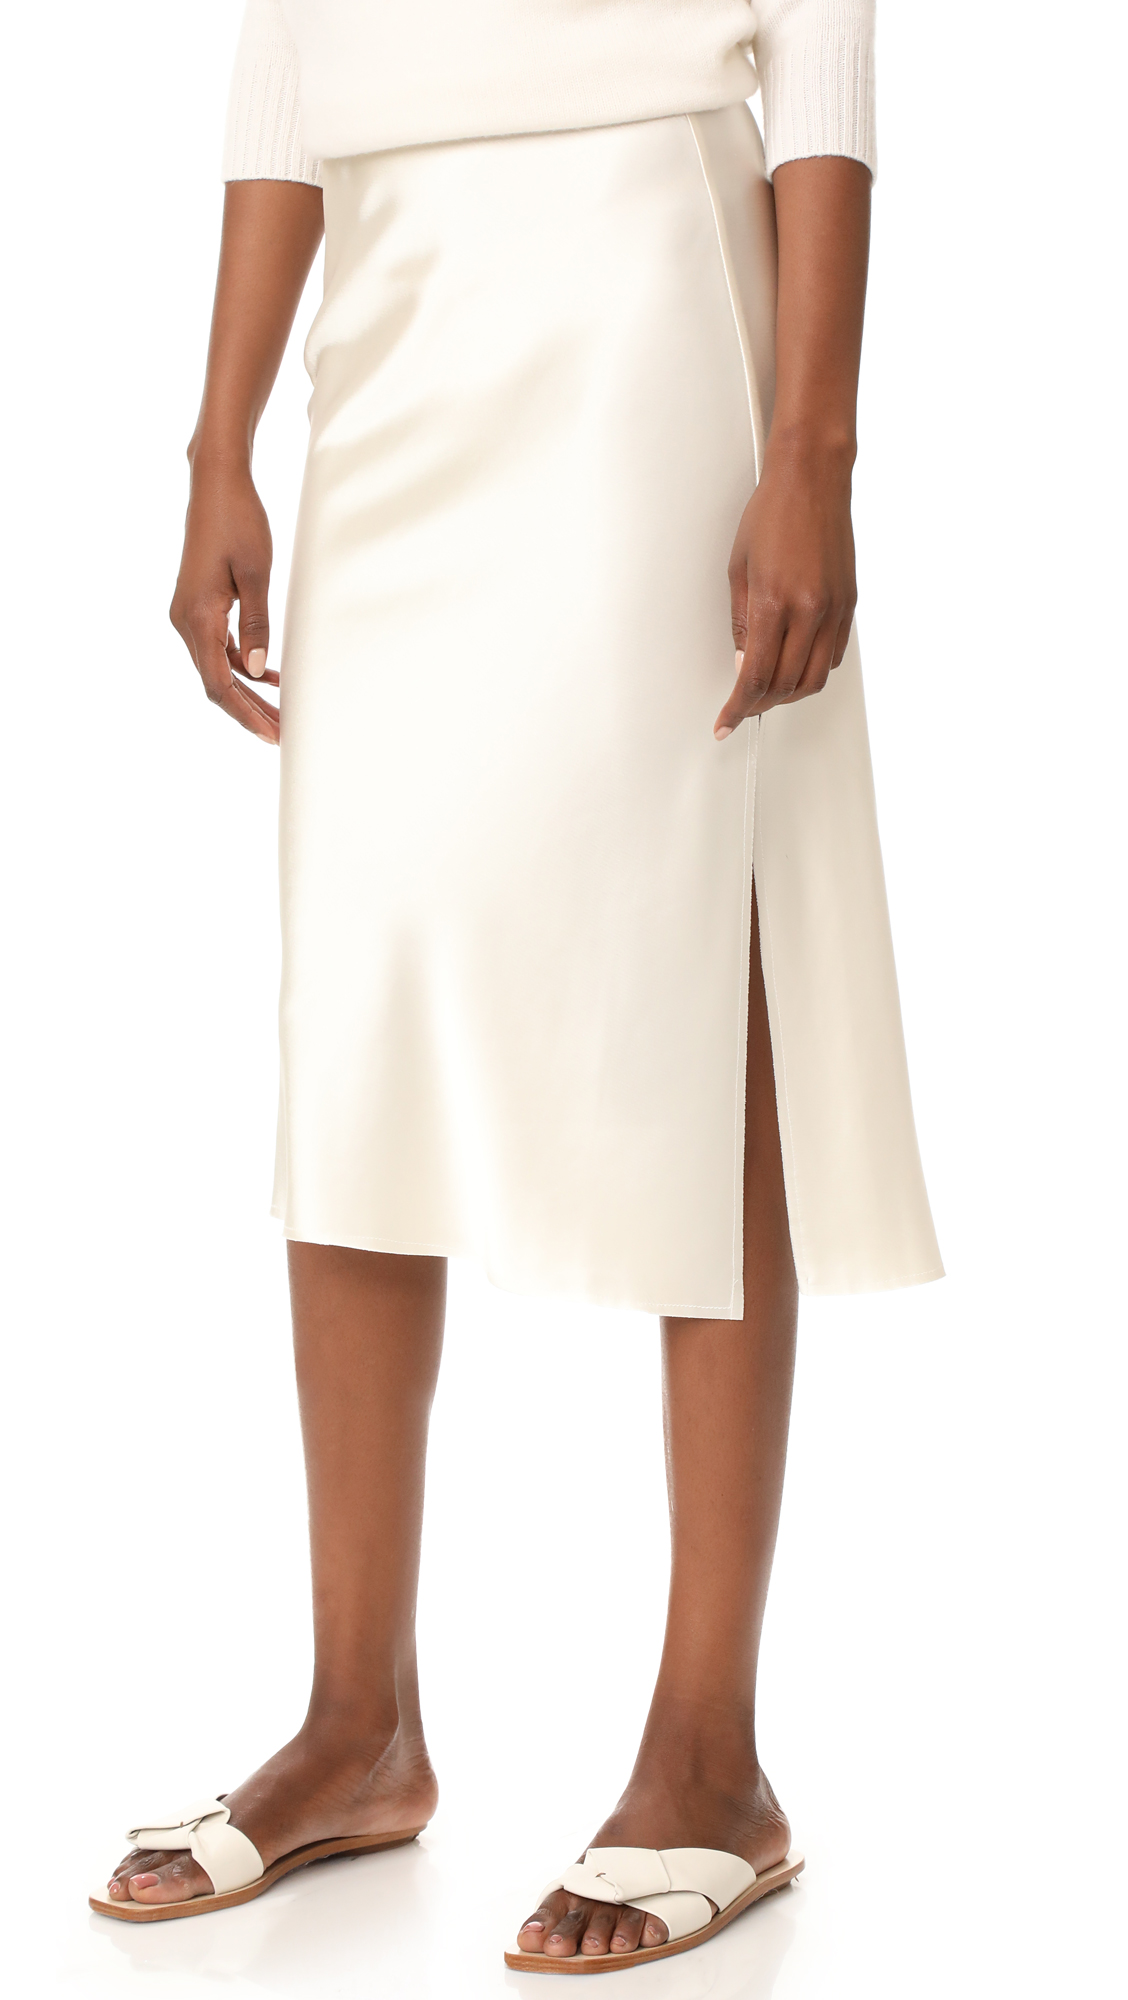 Emerson Thorpe Tori Mid Length Skirt - Ivory